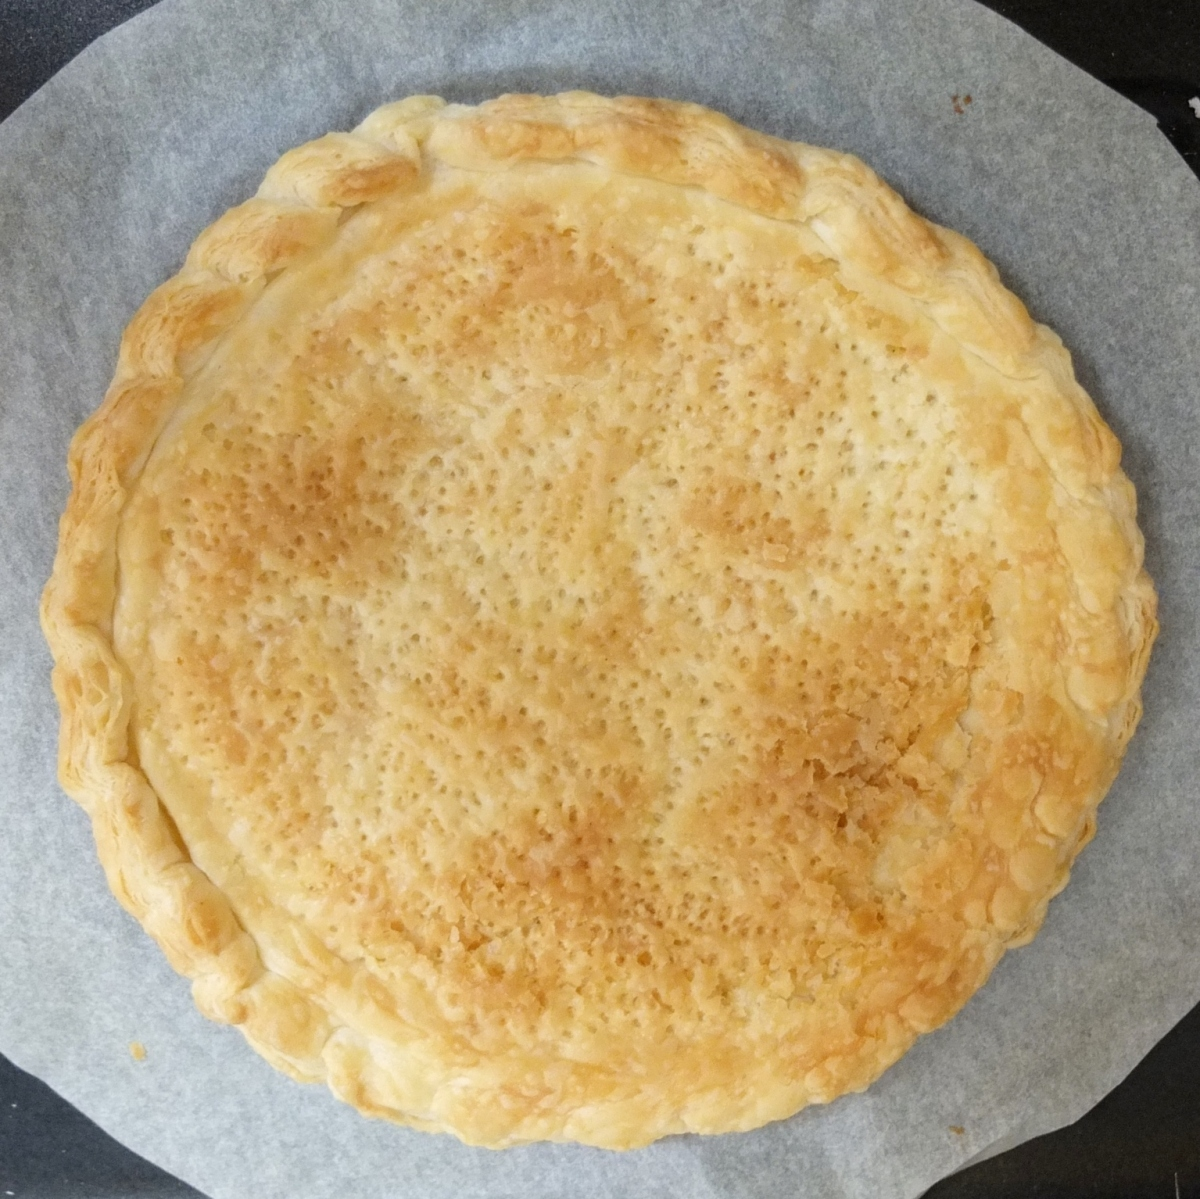 Shaping and baking a puff pastry tart shell